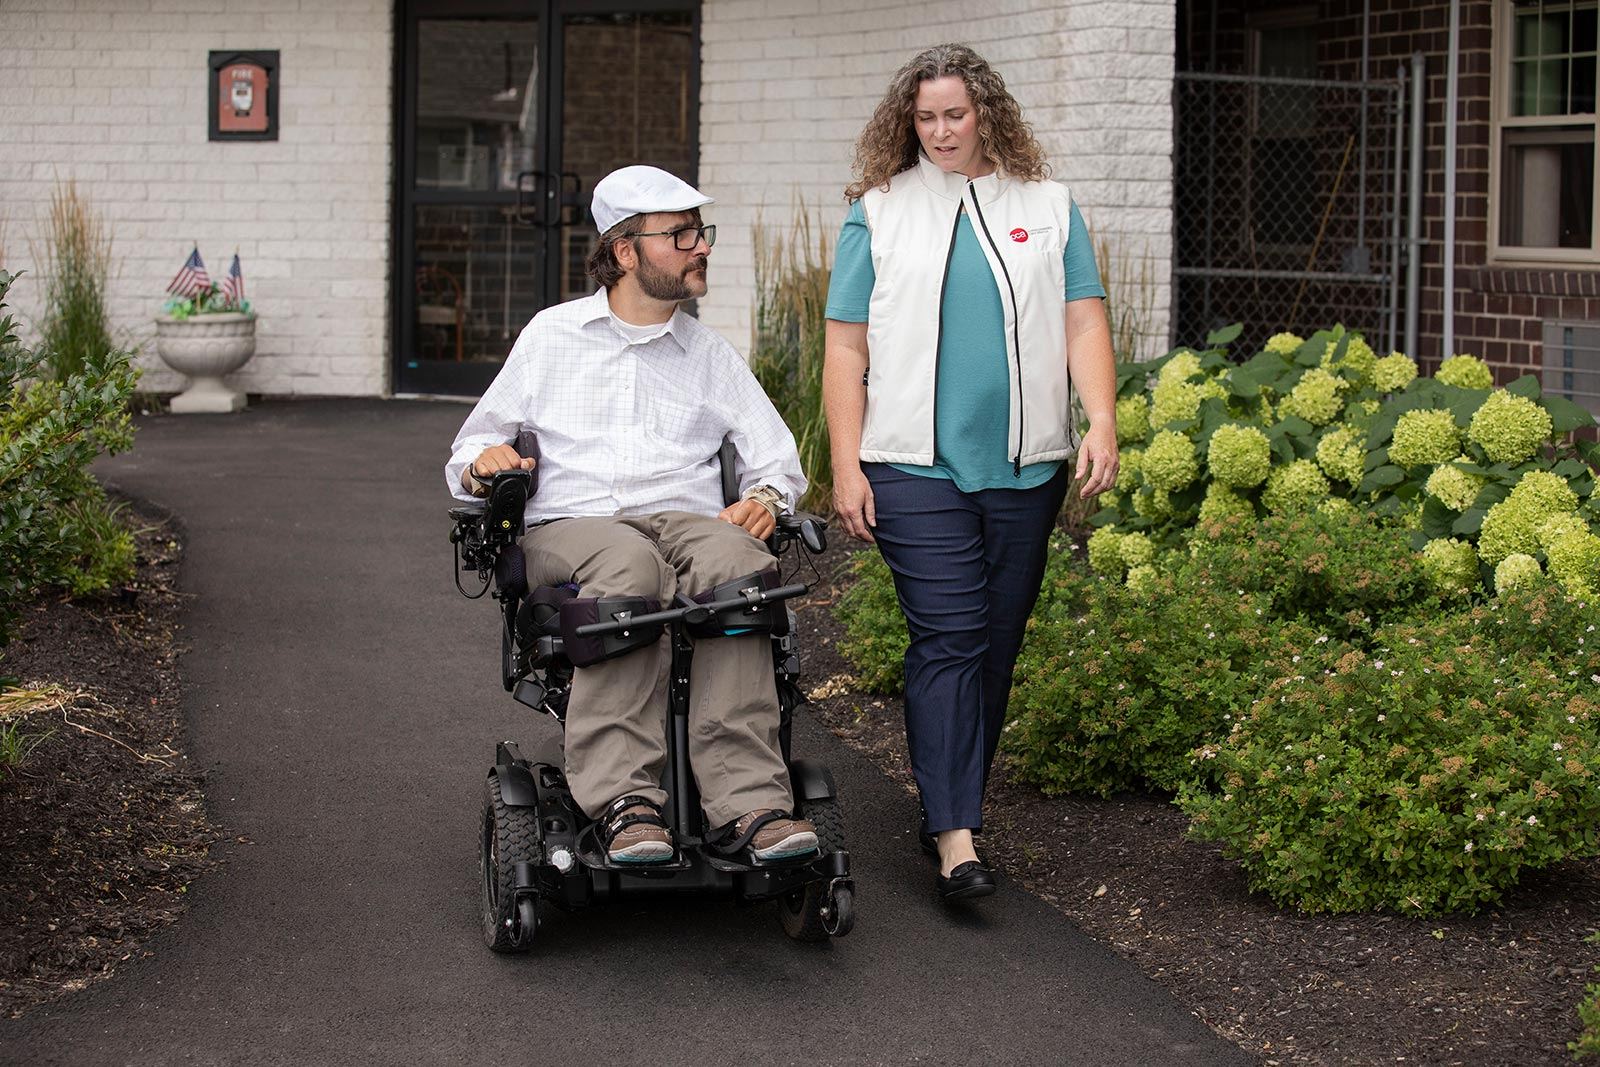 Disabled man in wheelchair and female care partner talking outdoors on walkway